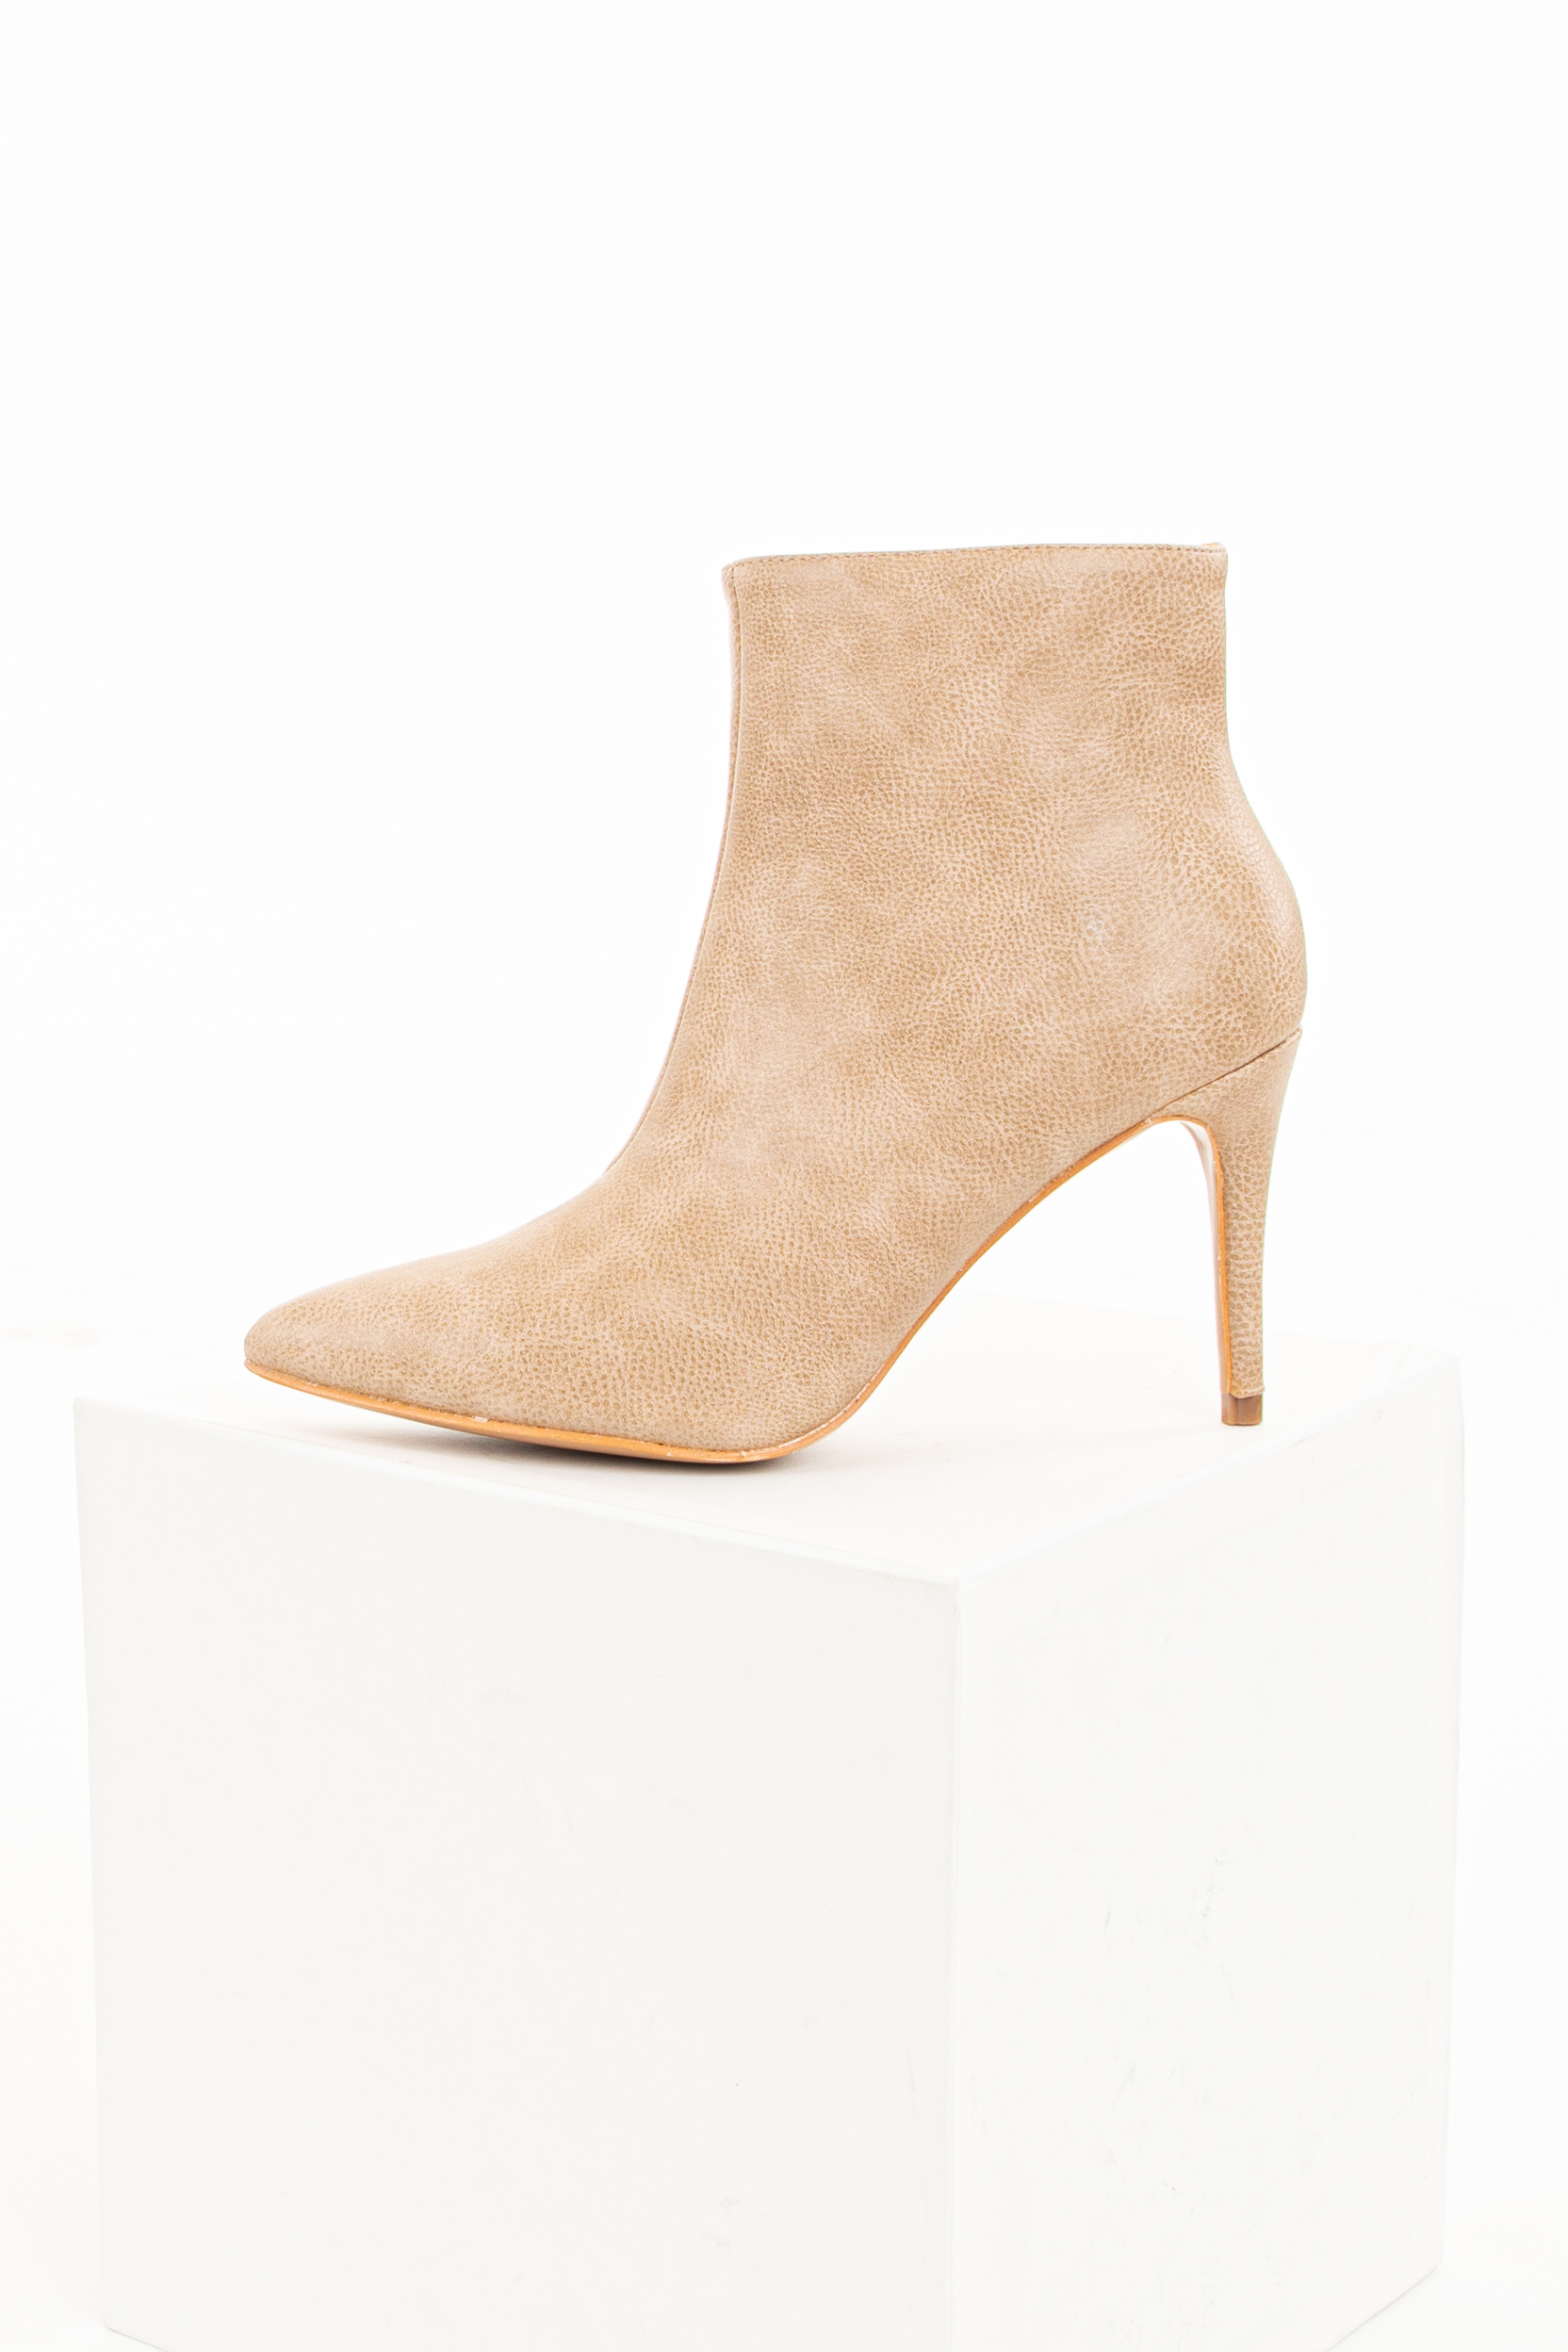 Beige Faux Leather Heeled Booties with Pointed Toe